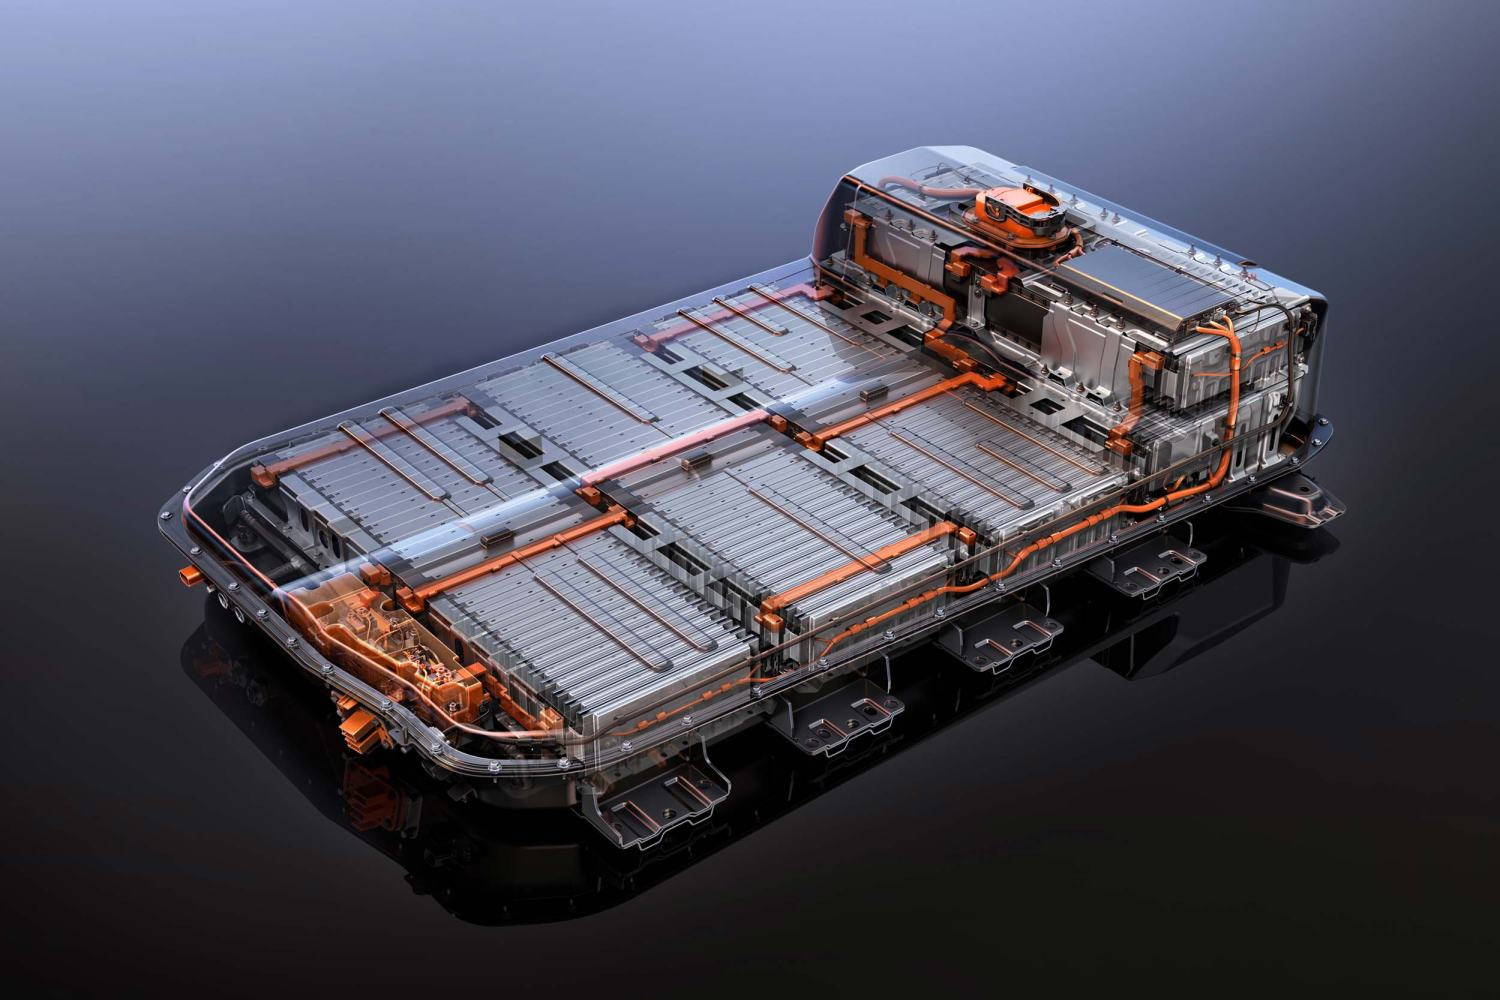 2017 Chevrolet Volt battery system